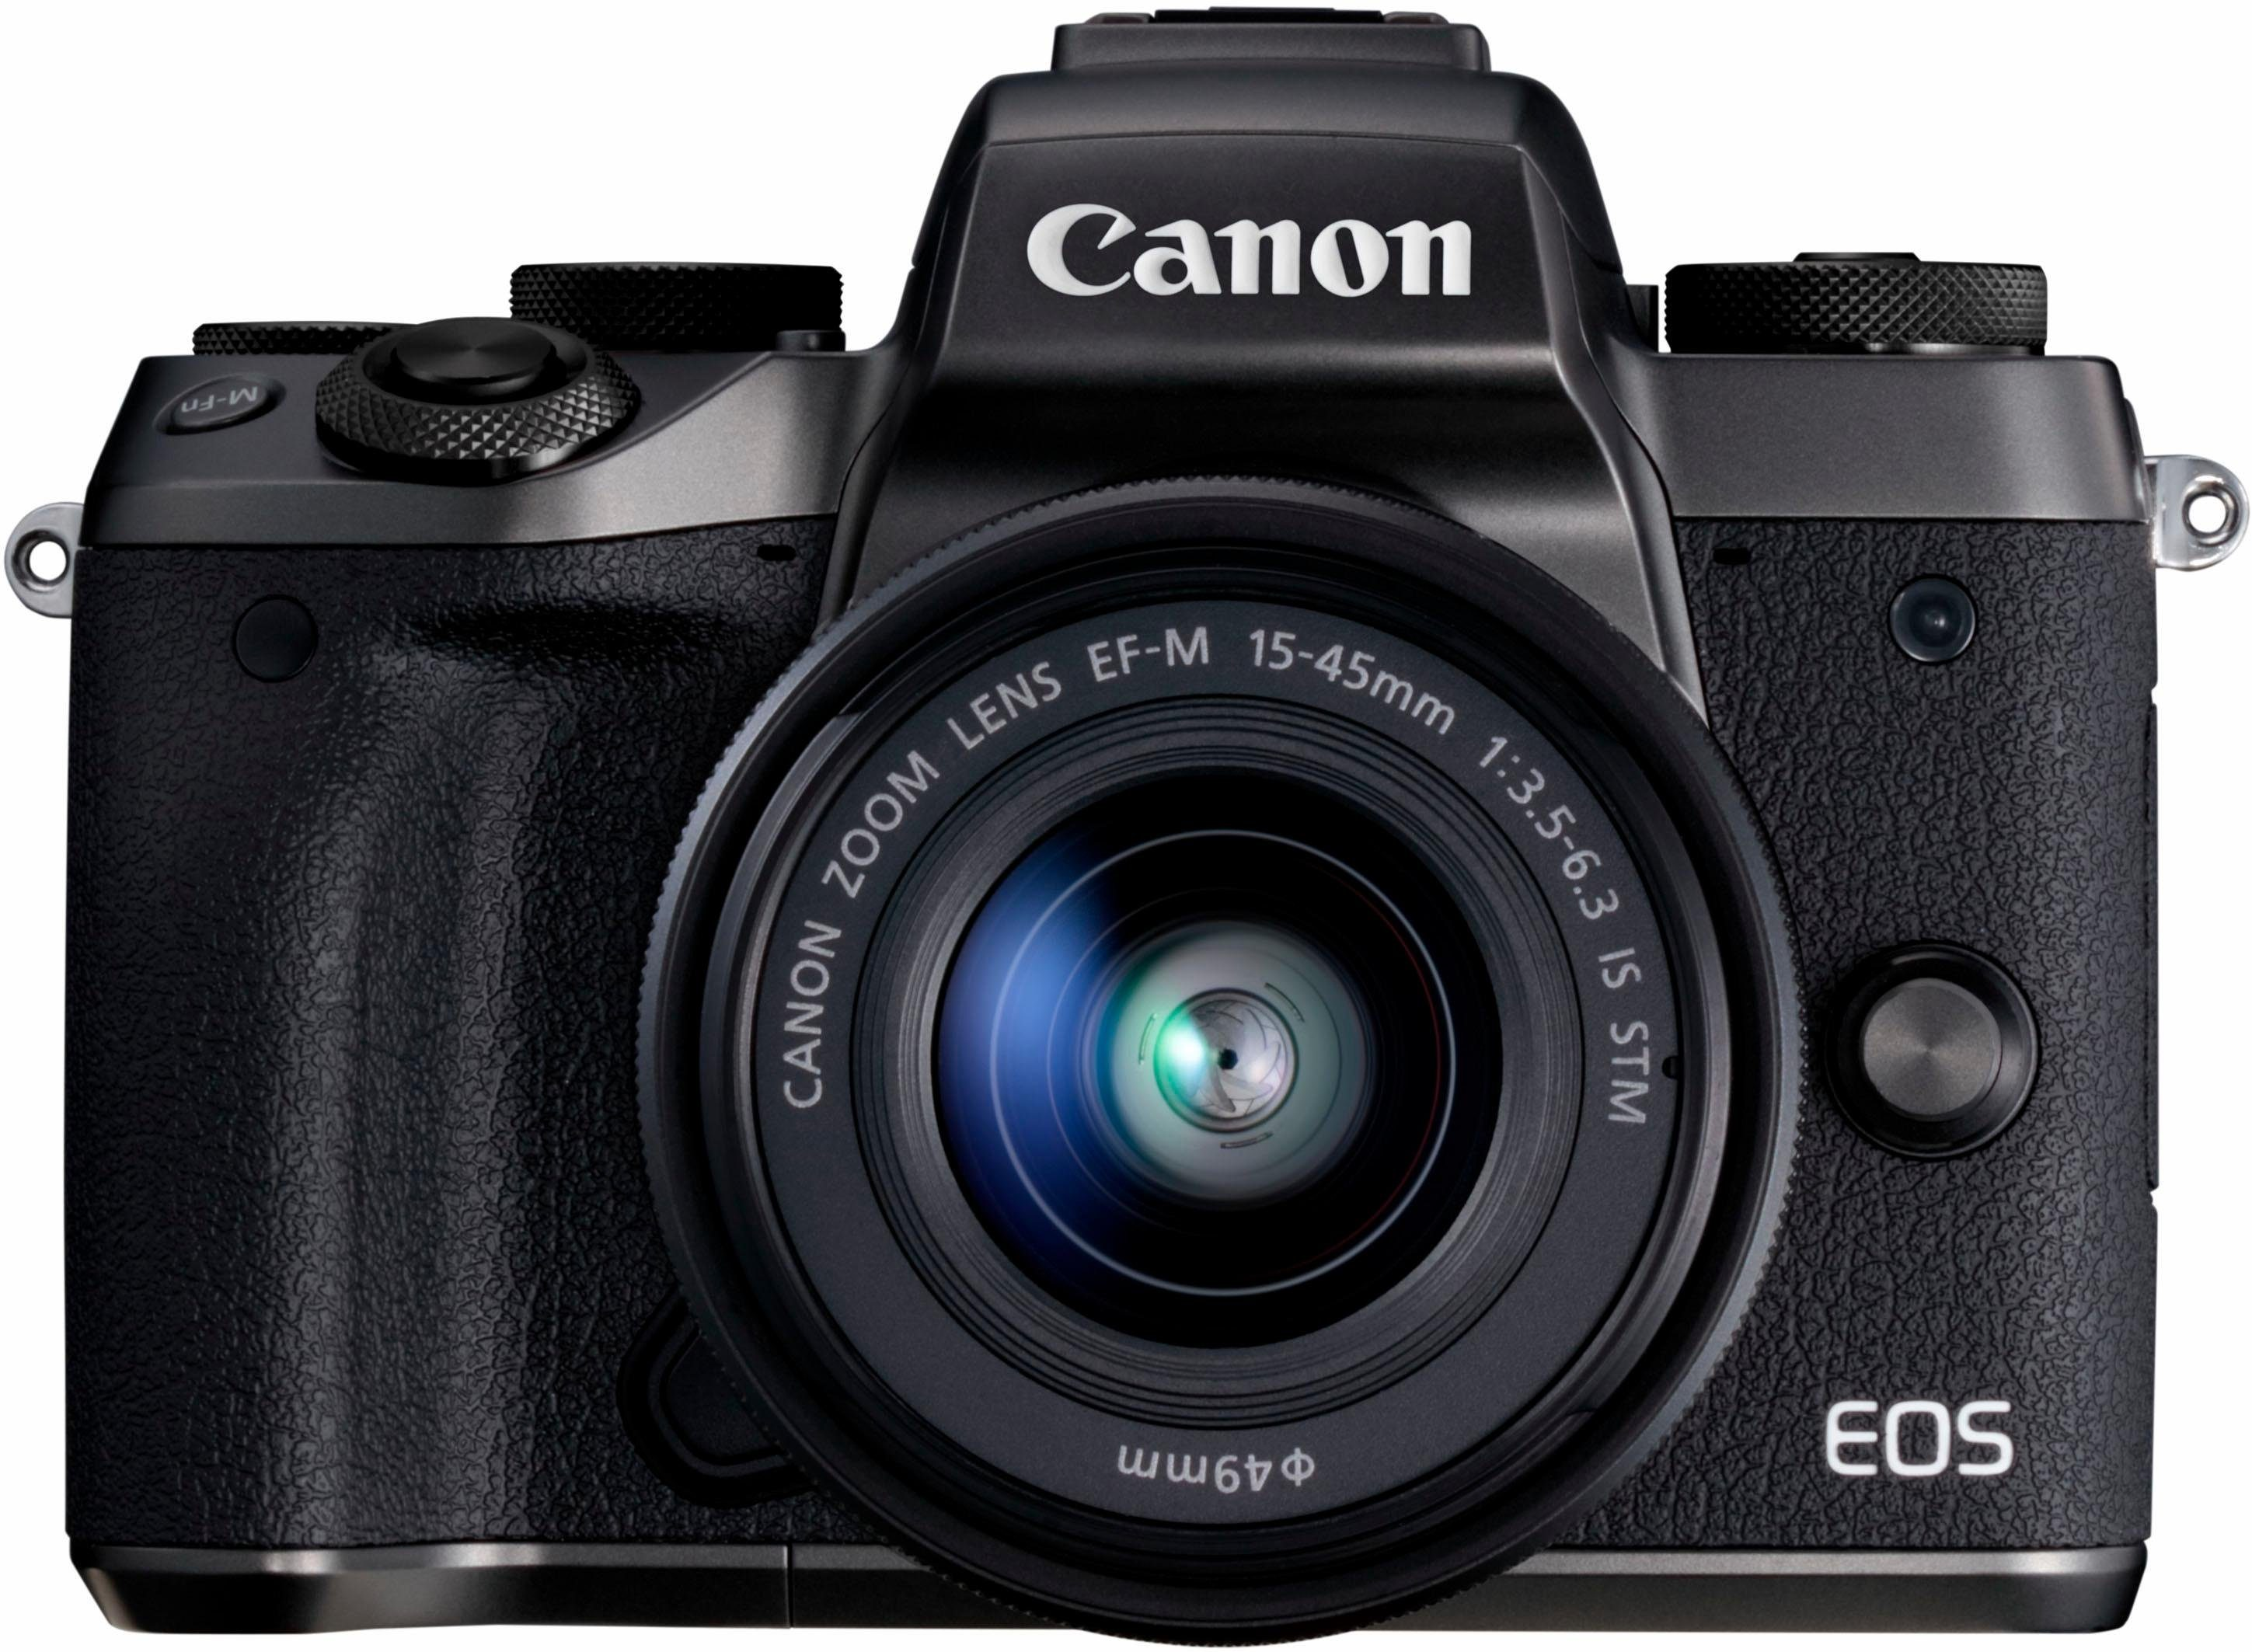 Canon EOS-M5 EF-M 15-45mm / 3,5 - 6,3 IS STM System Kamera